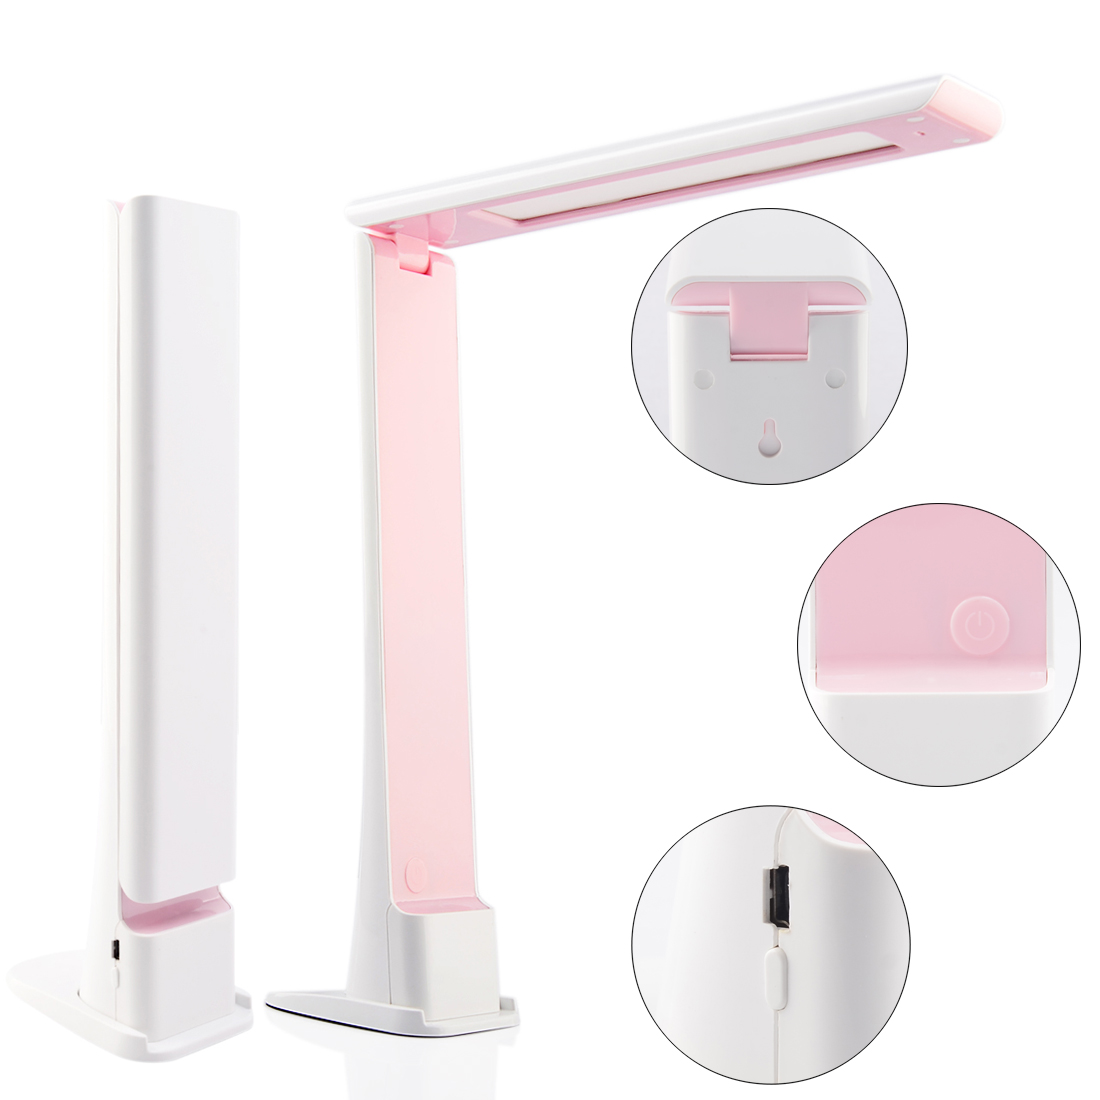 Foldable Touch Dimming LED Desk Table Lamp USB Rechargeable Bedside Study Reading Light Indoor Lights For Bedroom - White + Pink usb rechargeable foldable touch dimming desk lamp 42 led 3 brightness adjustable eye protect ultra thin reading study lamp